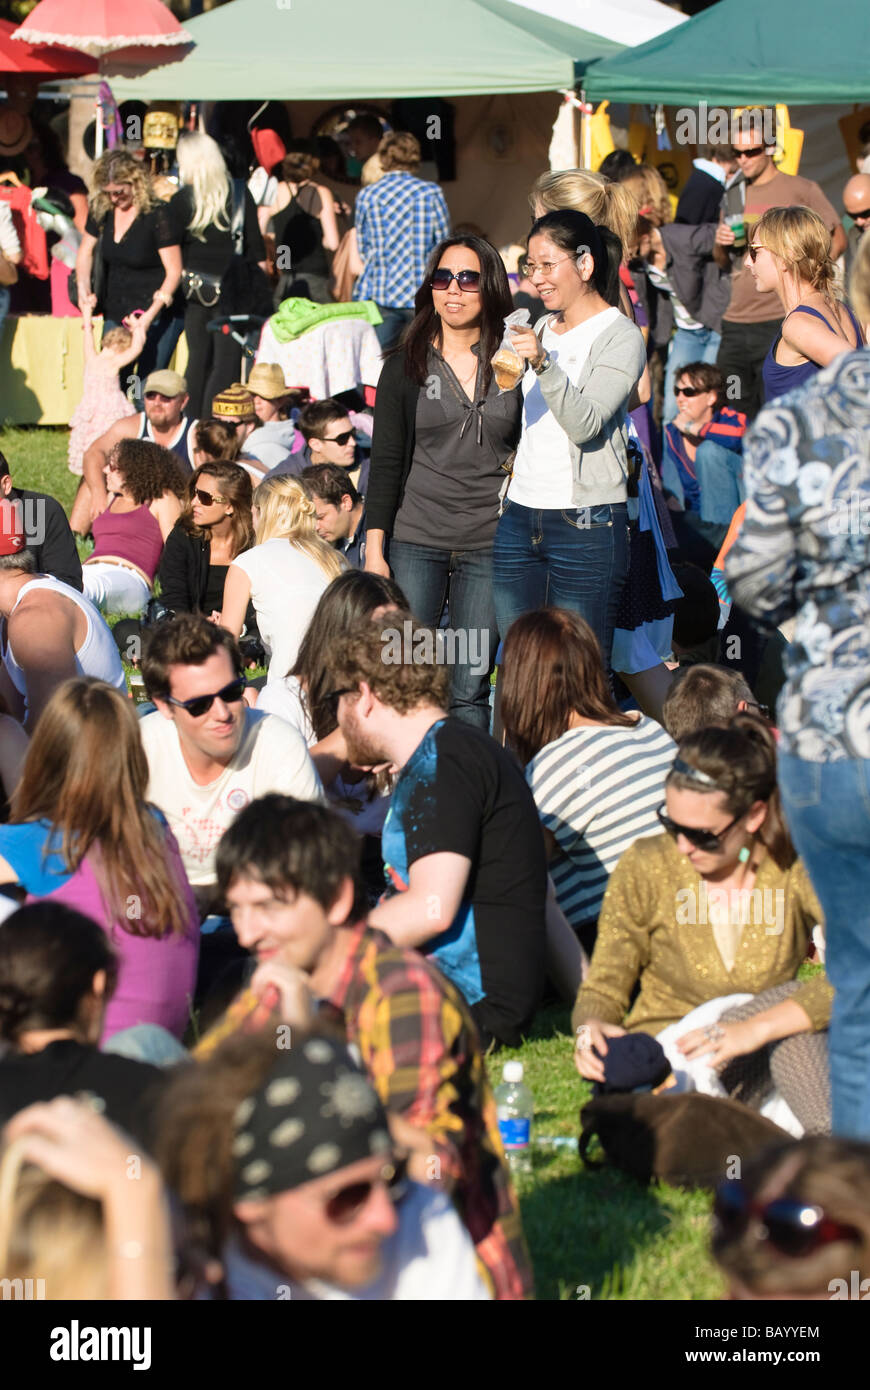 Community festivals, popular with young people, are held in city suburbs around Australia. Multicultural crowd; - Stock Image